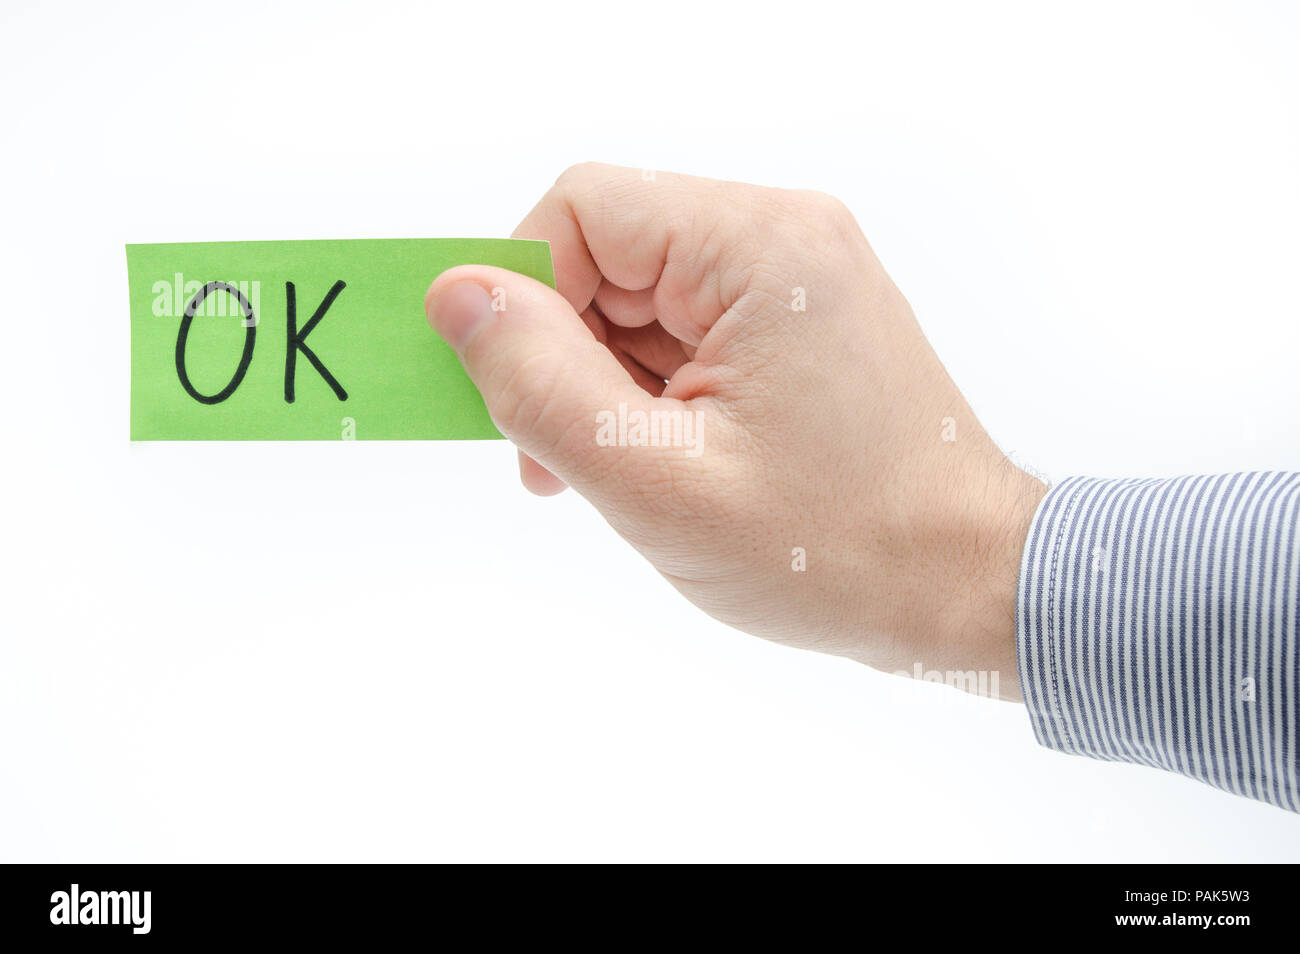 OK approval concept suggested by a green ticket in a business man's hand on a white background - Stock Image